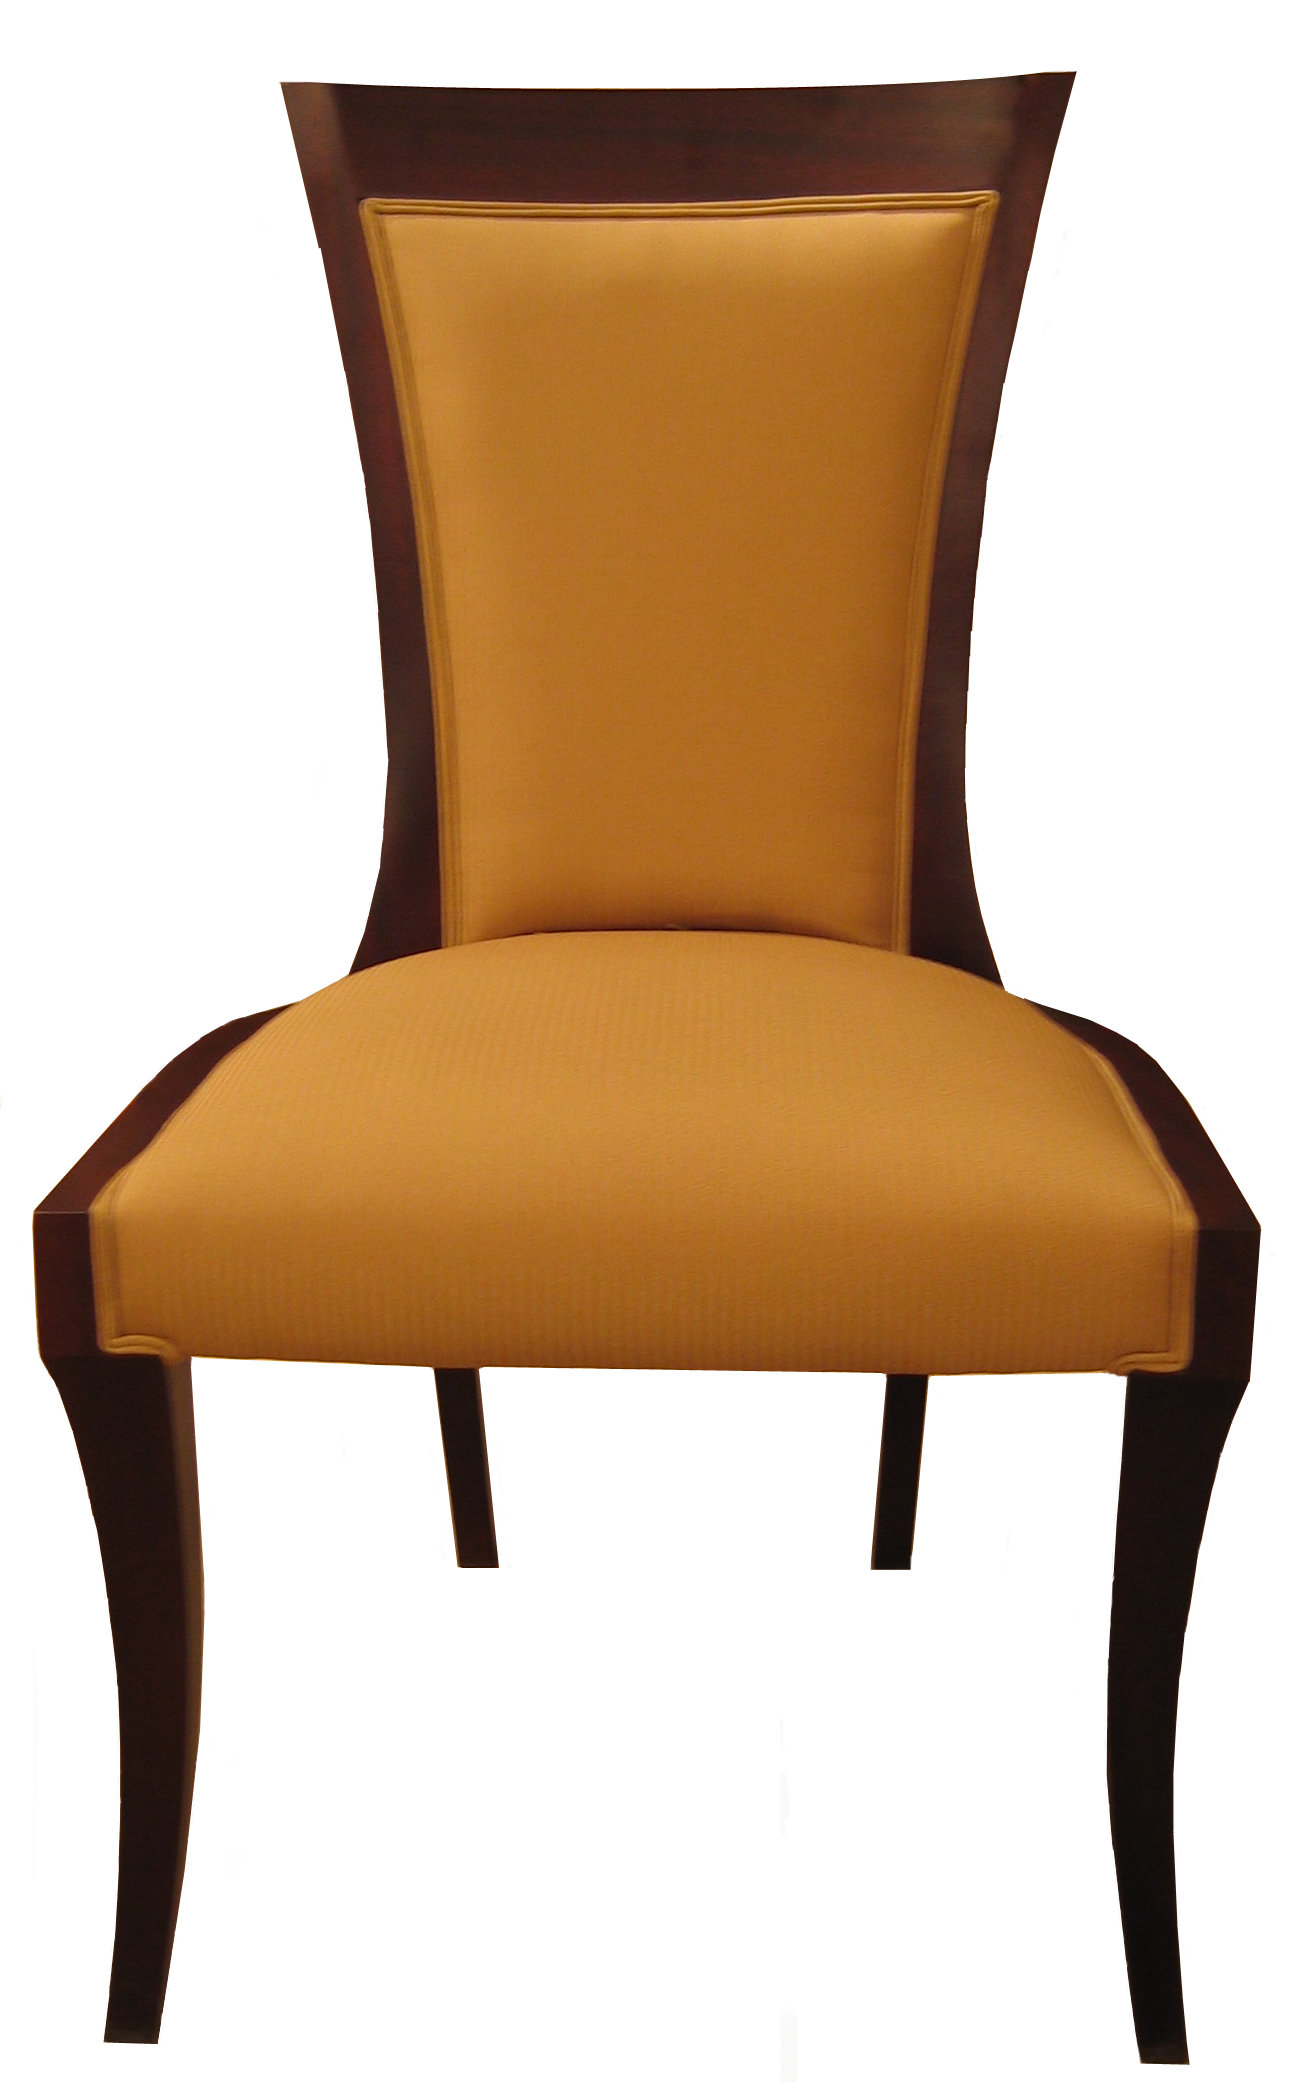 Apparenza design studio transitional and couture for Dining chair ideas